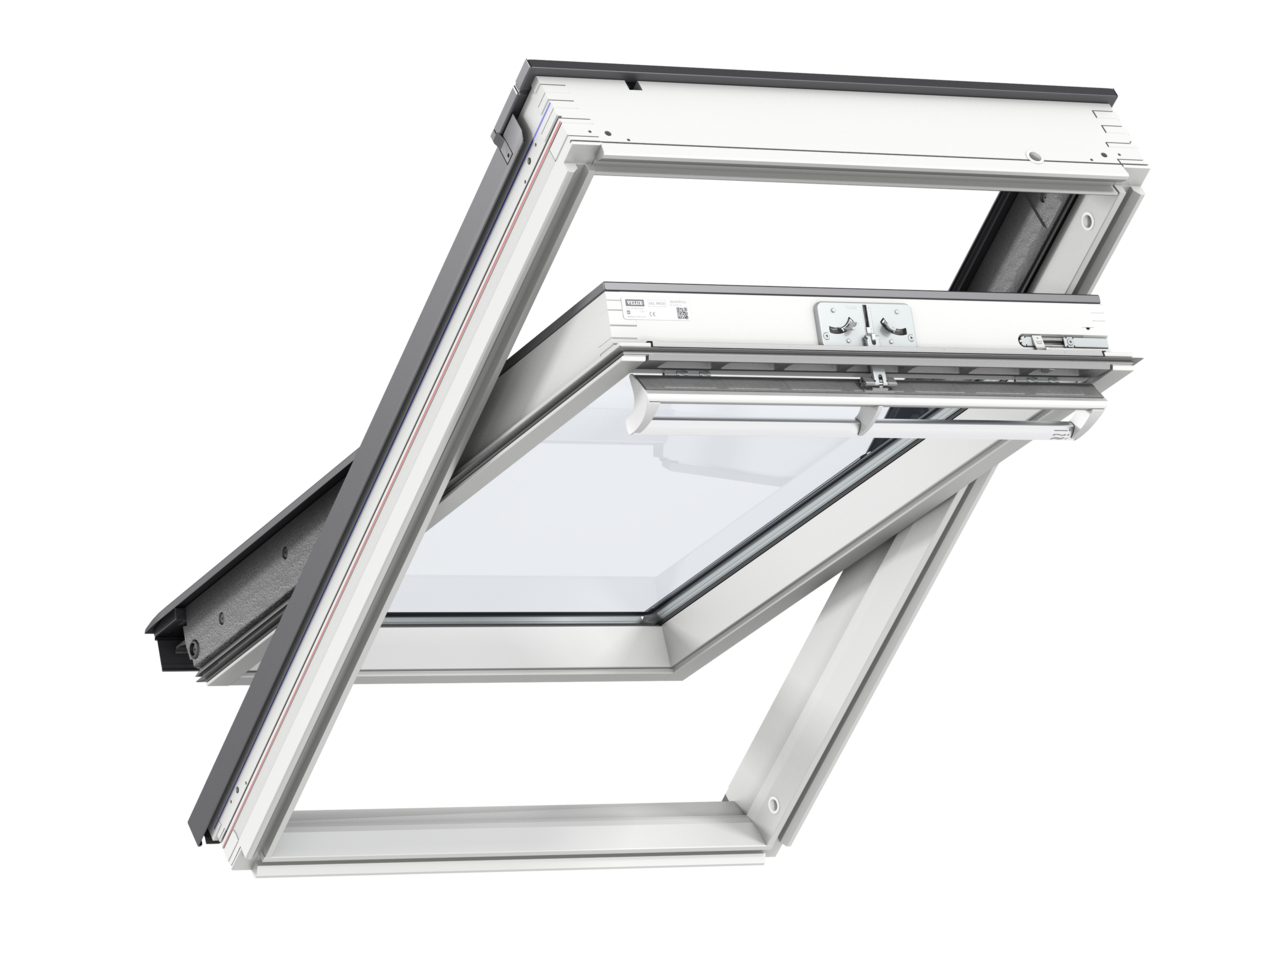 Velux GGL CK04 550 x 980mm Centre Pivot 66 Pane Roof Window - White Painted